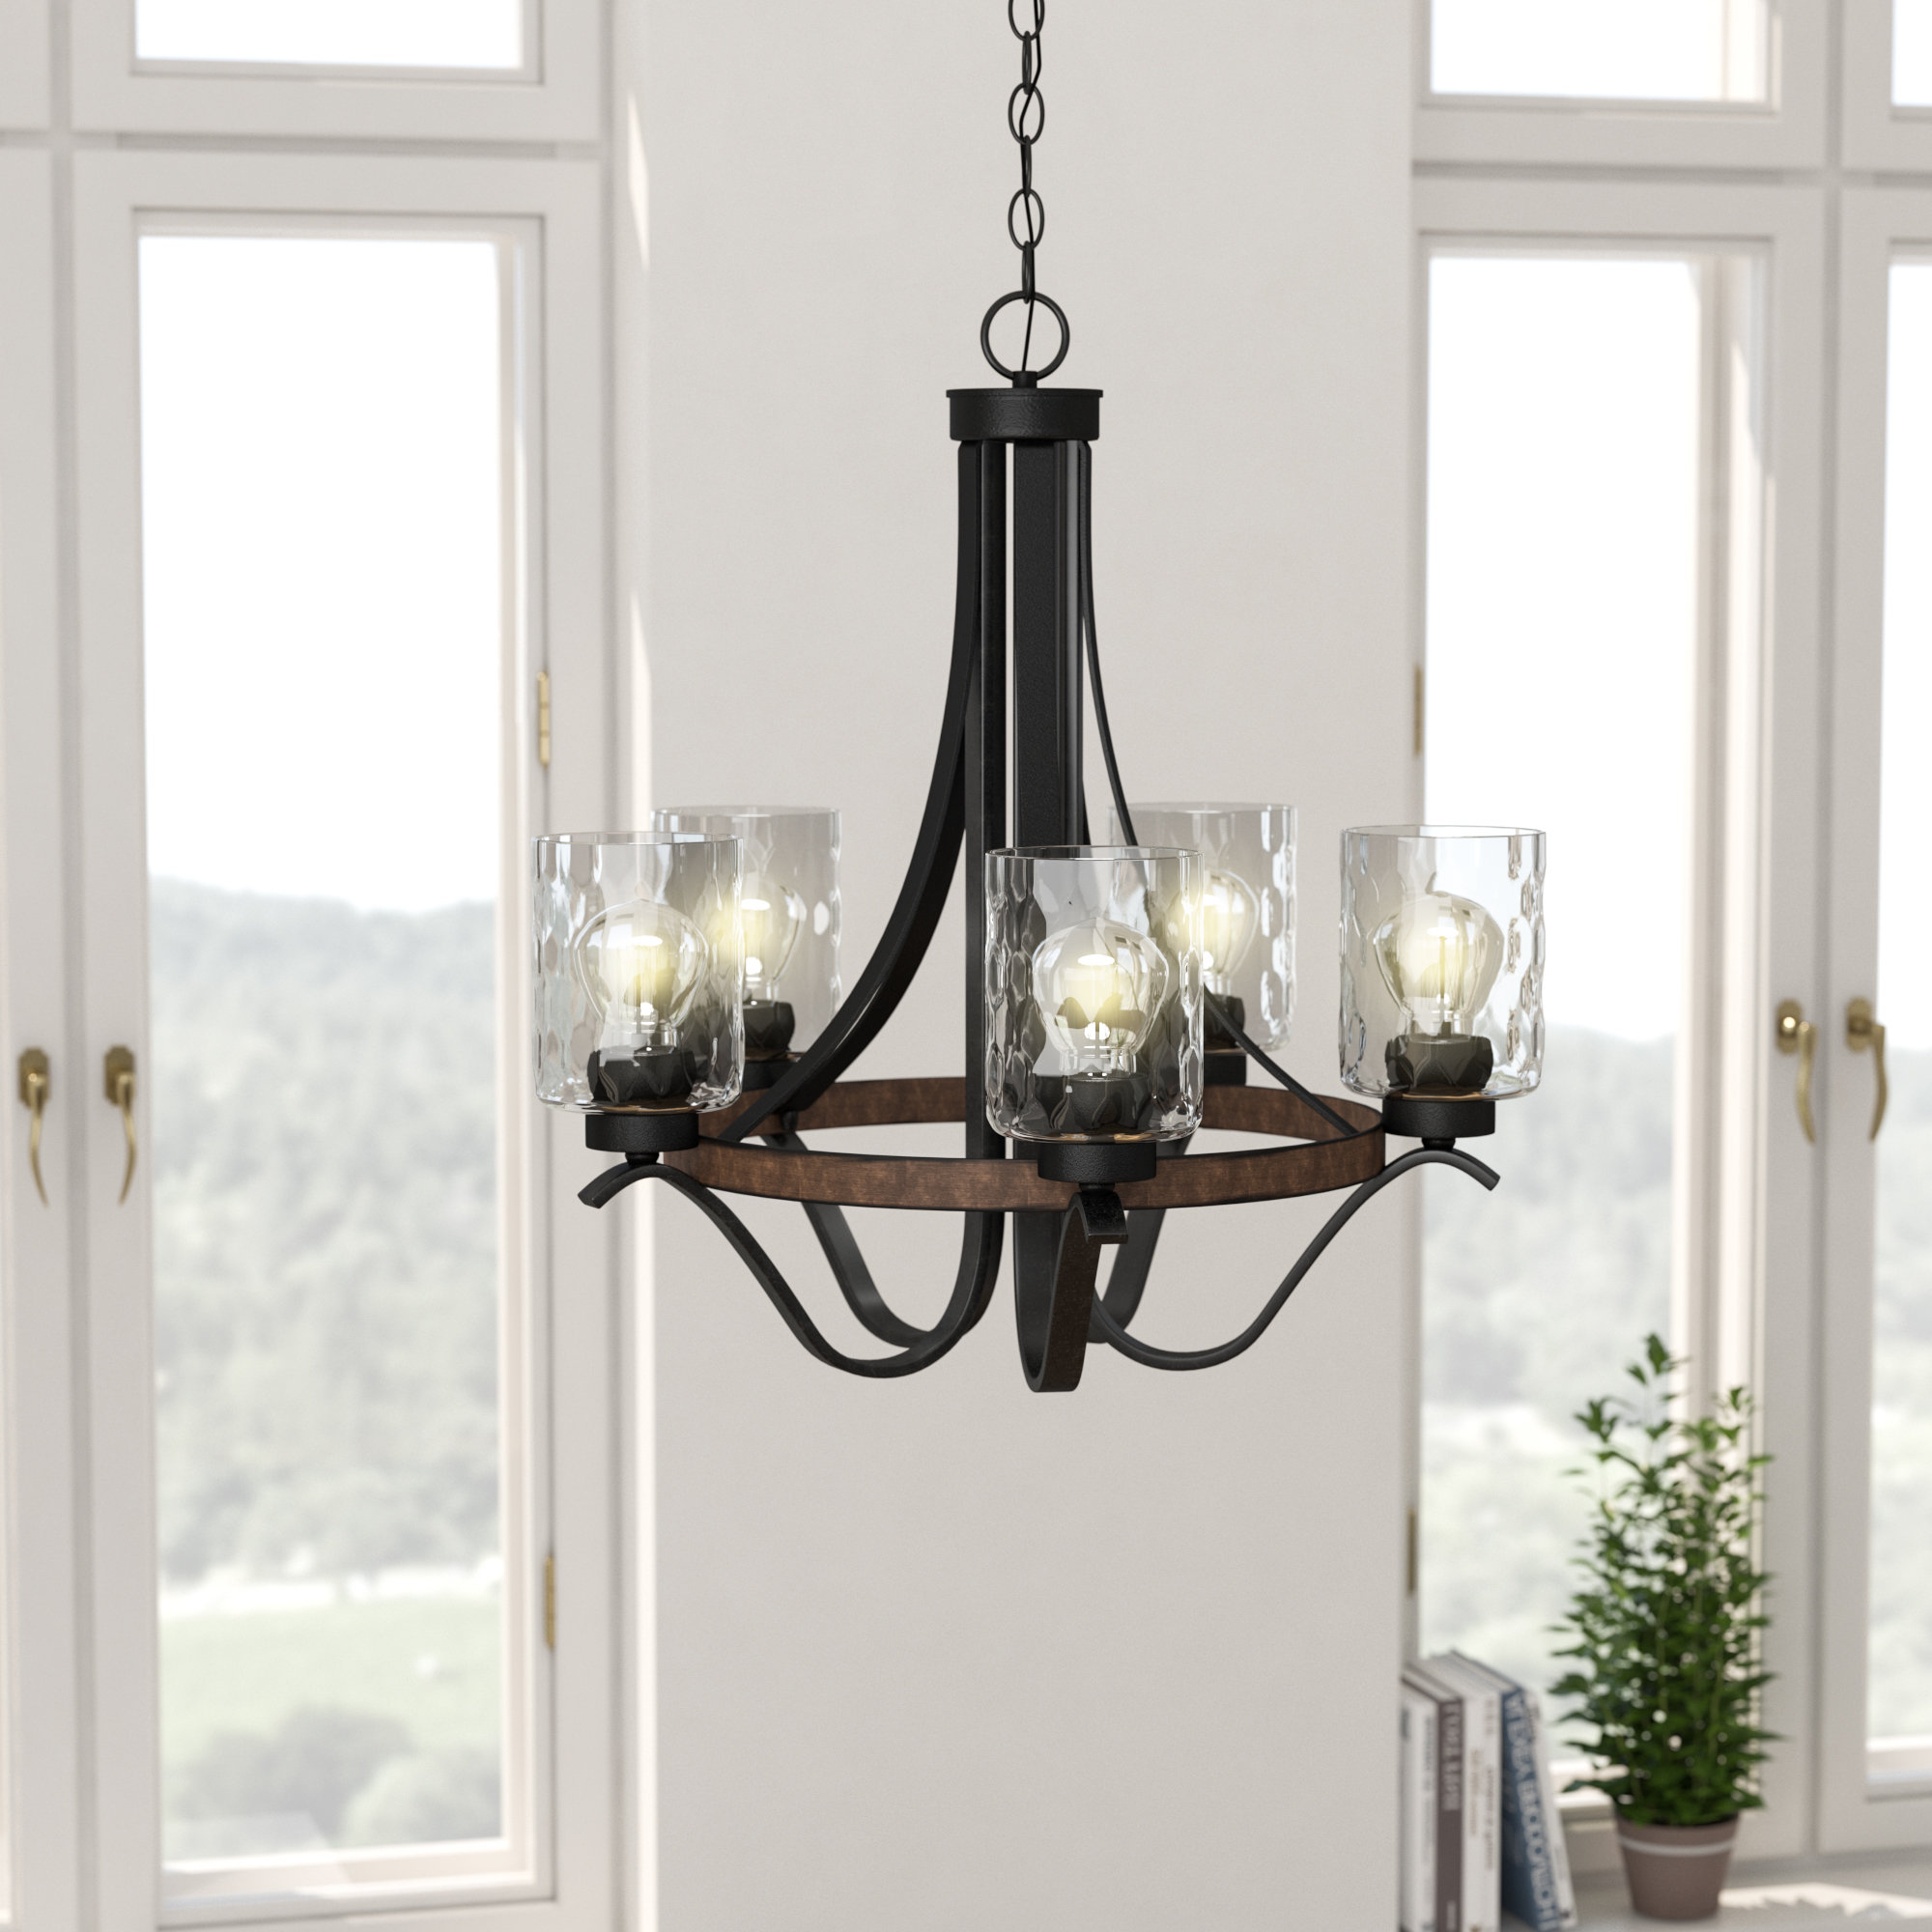 Newest Crofoot 5 Light Shaded Chandeliers Inside Laurel Foundry Modern Farmhouse Sabo Indoor 5 Light Shaded Chandelier (View 14 of 20)